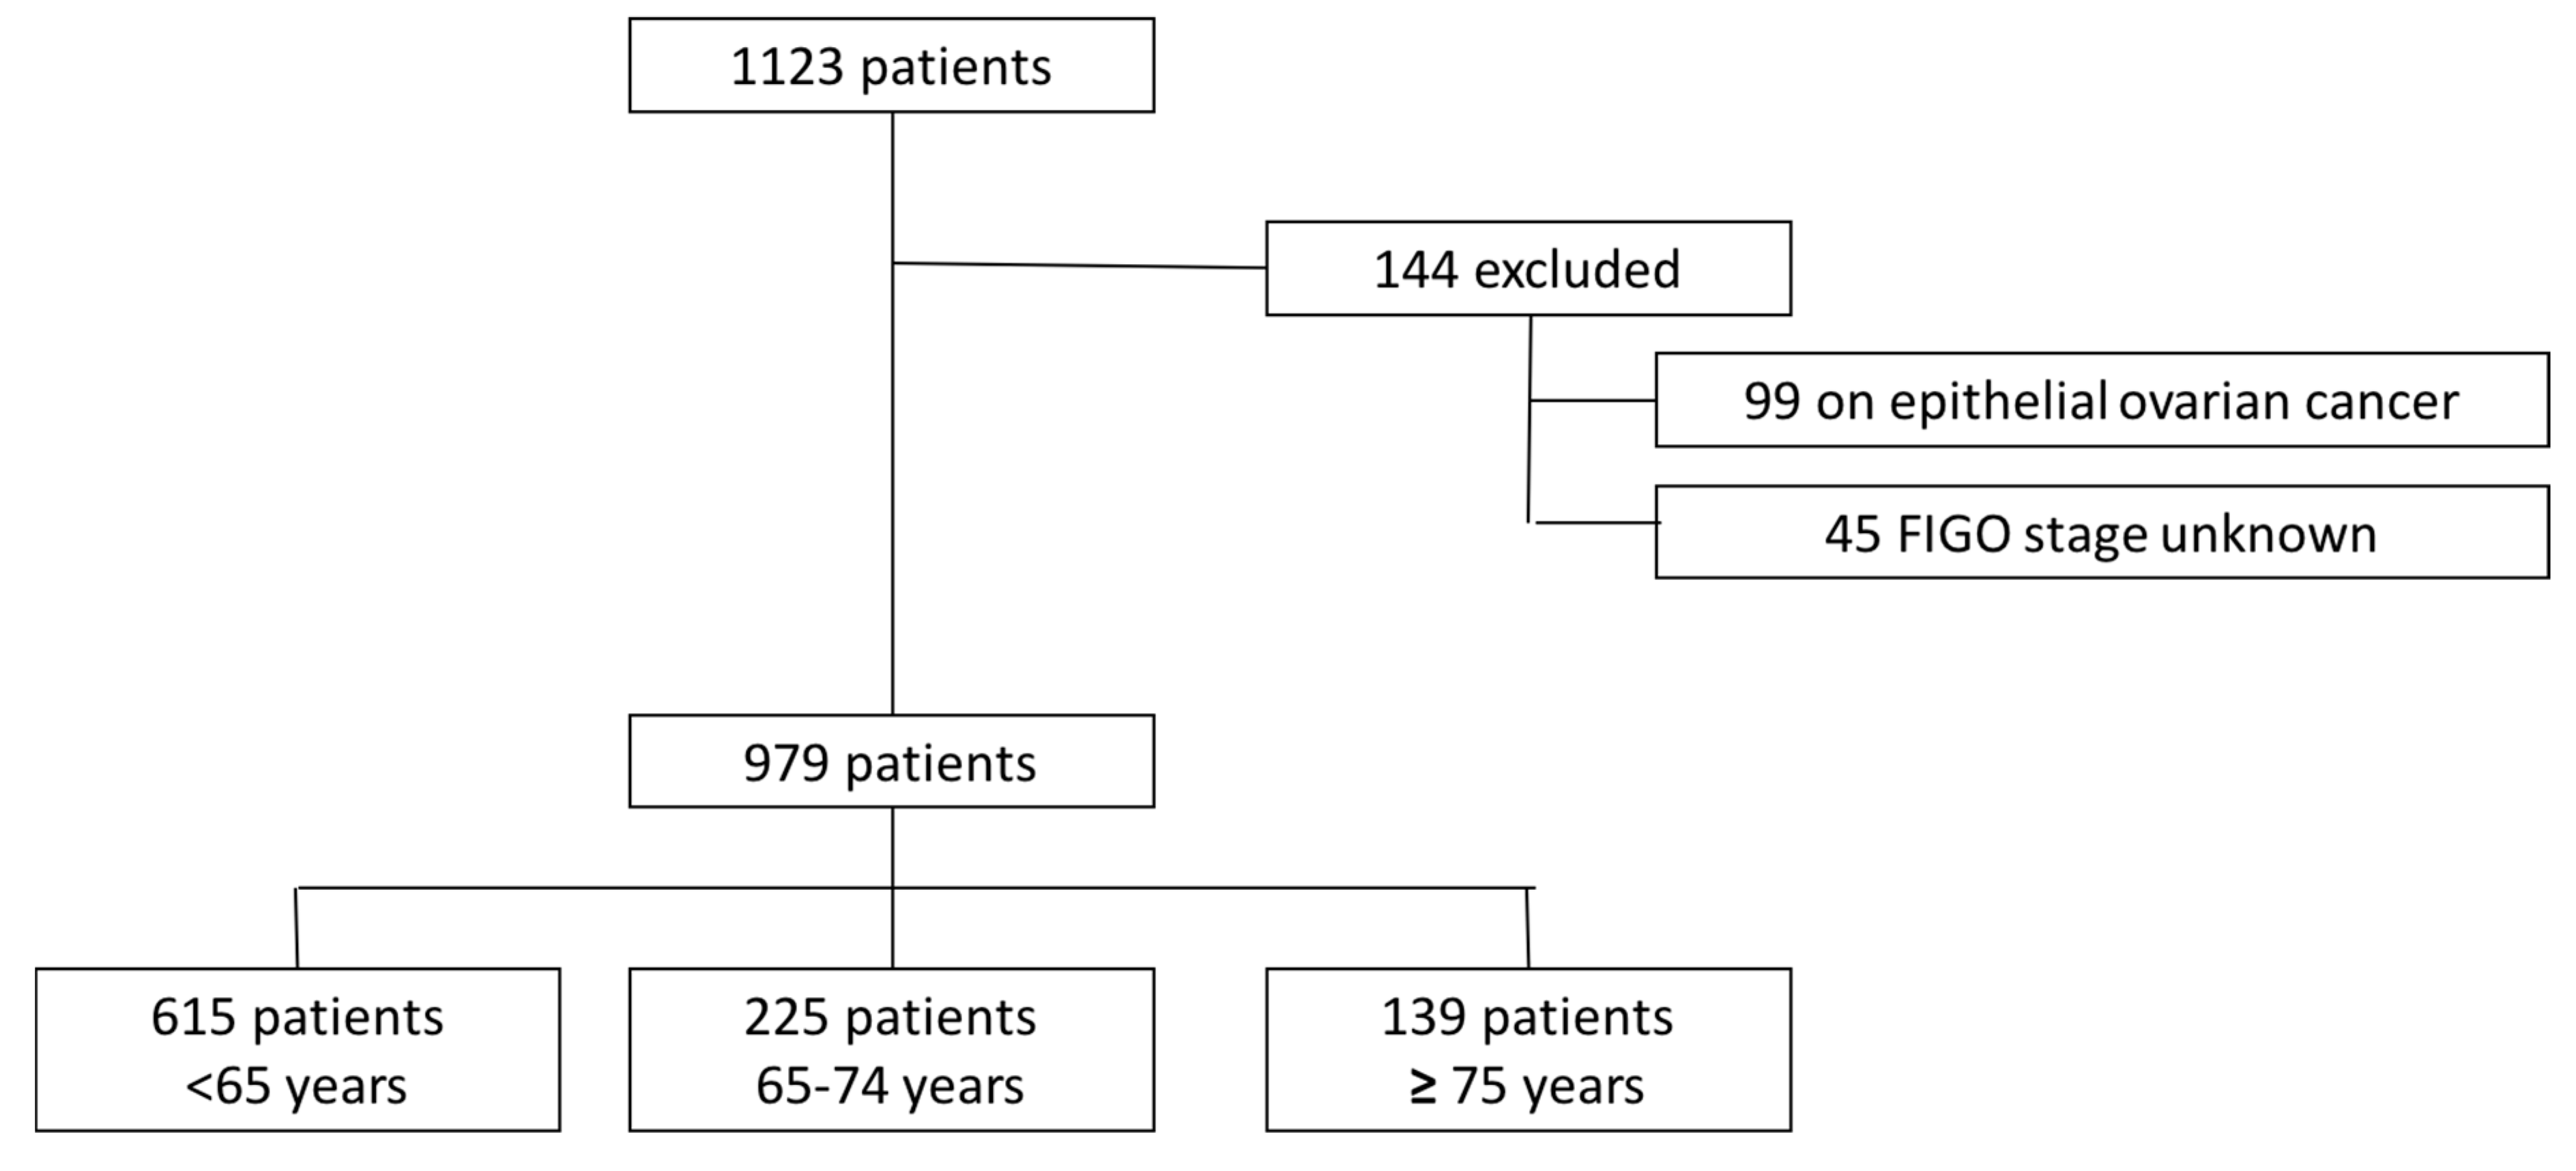 Jcm Free Full Text Management And Survival Of Elderly And Very Elderly Patients With Ovarian Cancer An Age Stratified Study Of 1123 Women From The Francogyn Group Html